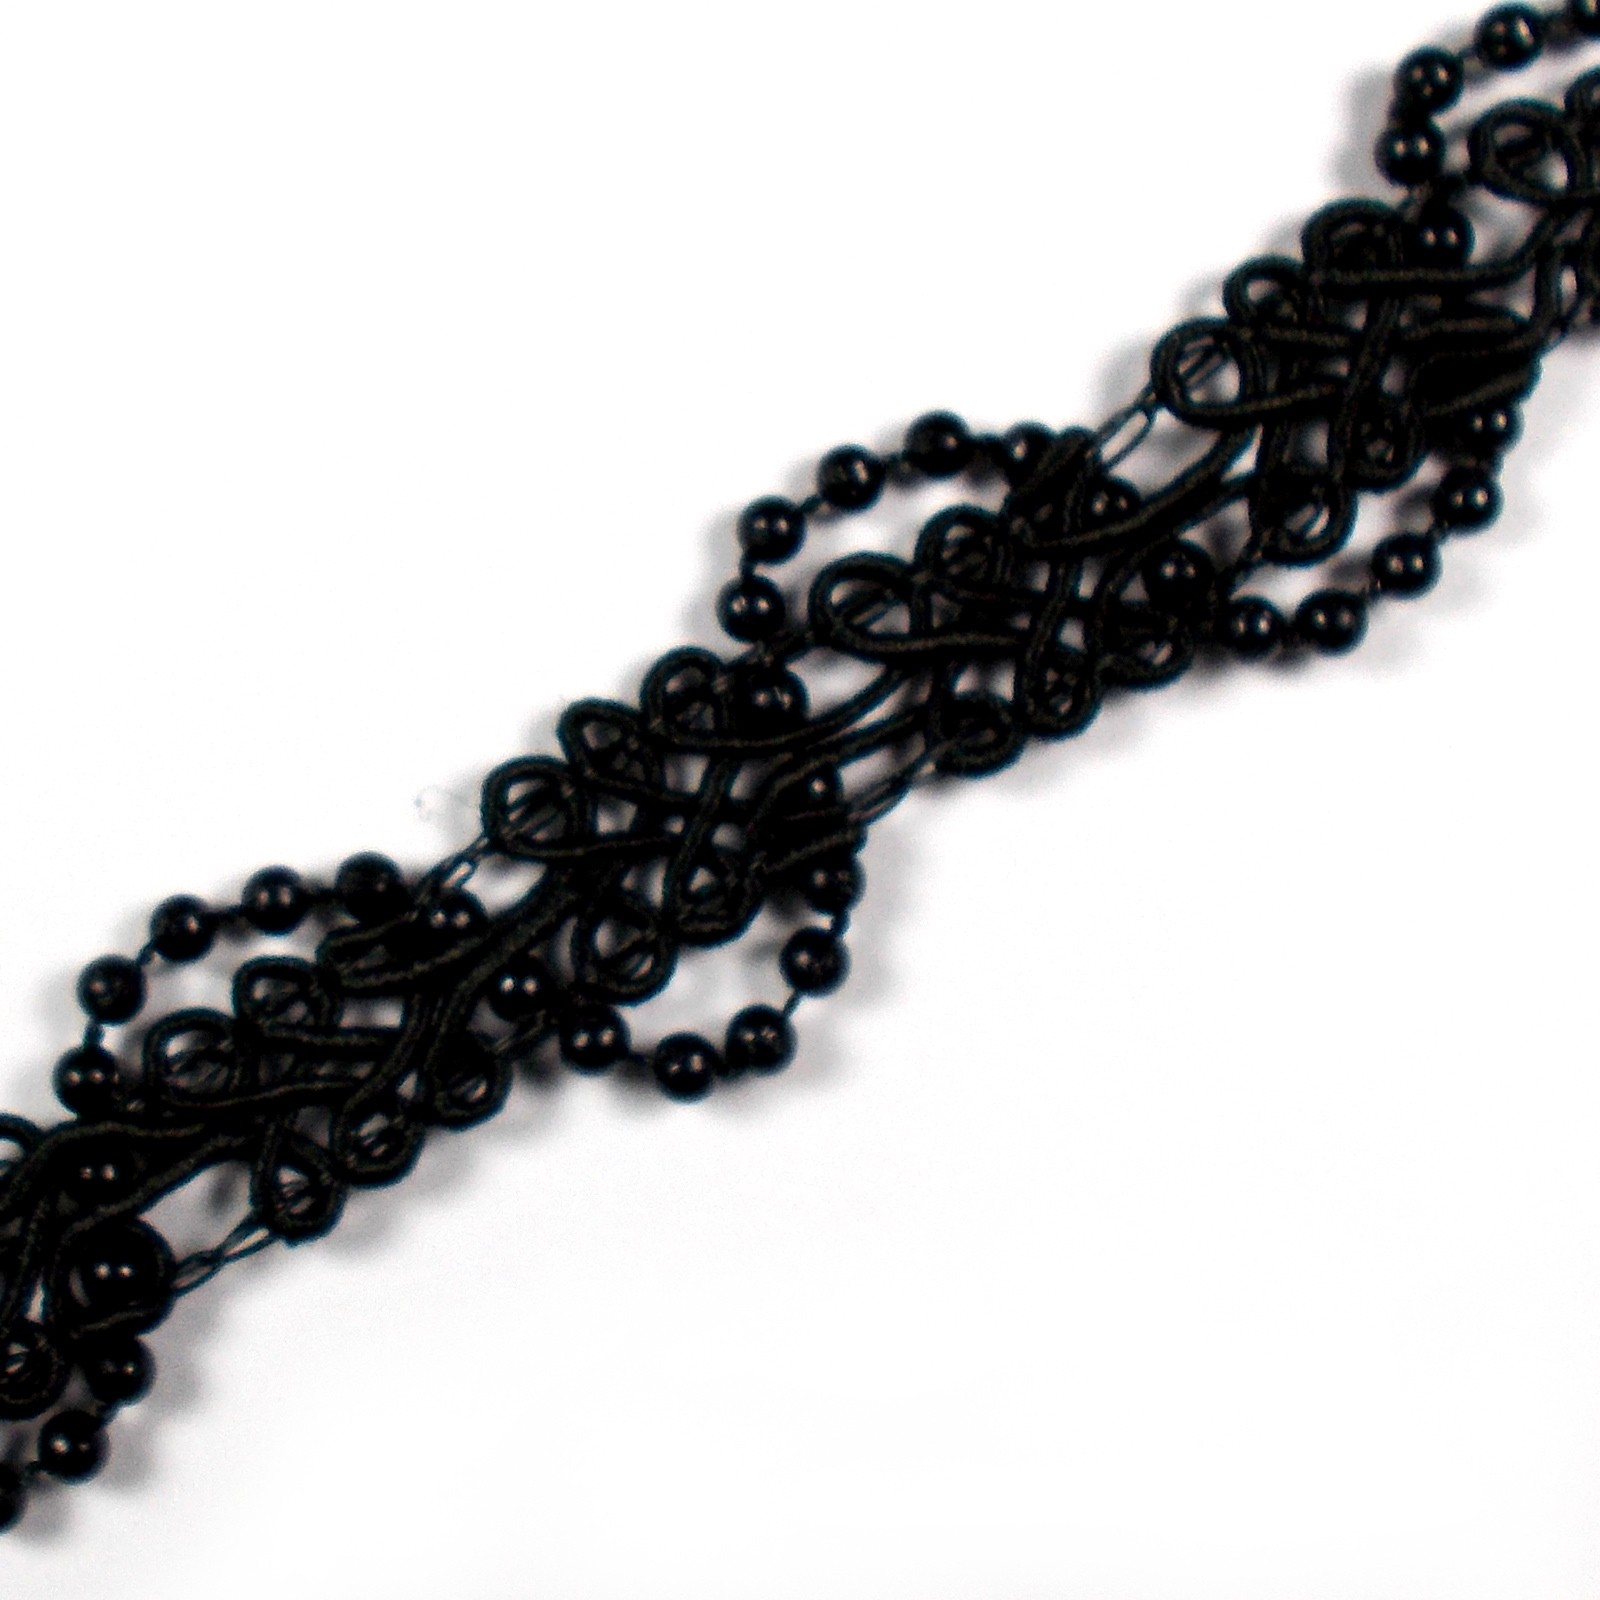 Beaded Braid Lace Trim 2cm wide Black 1 metre length